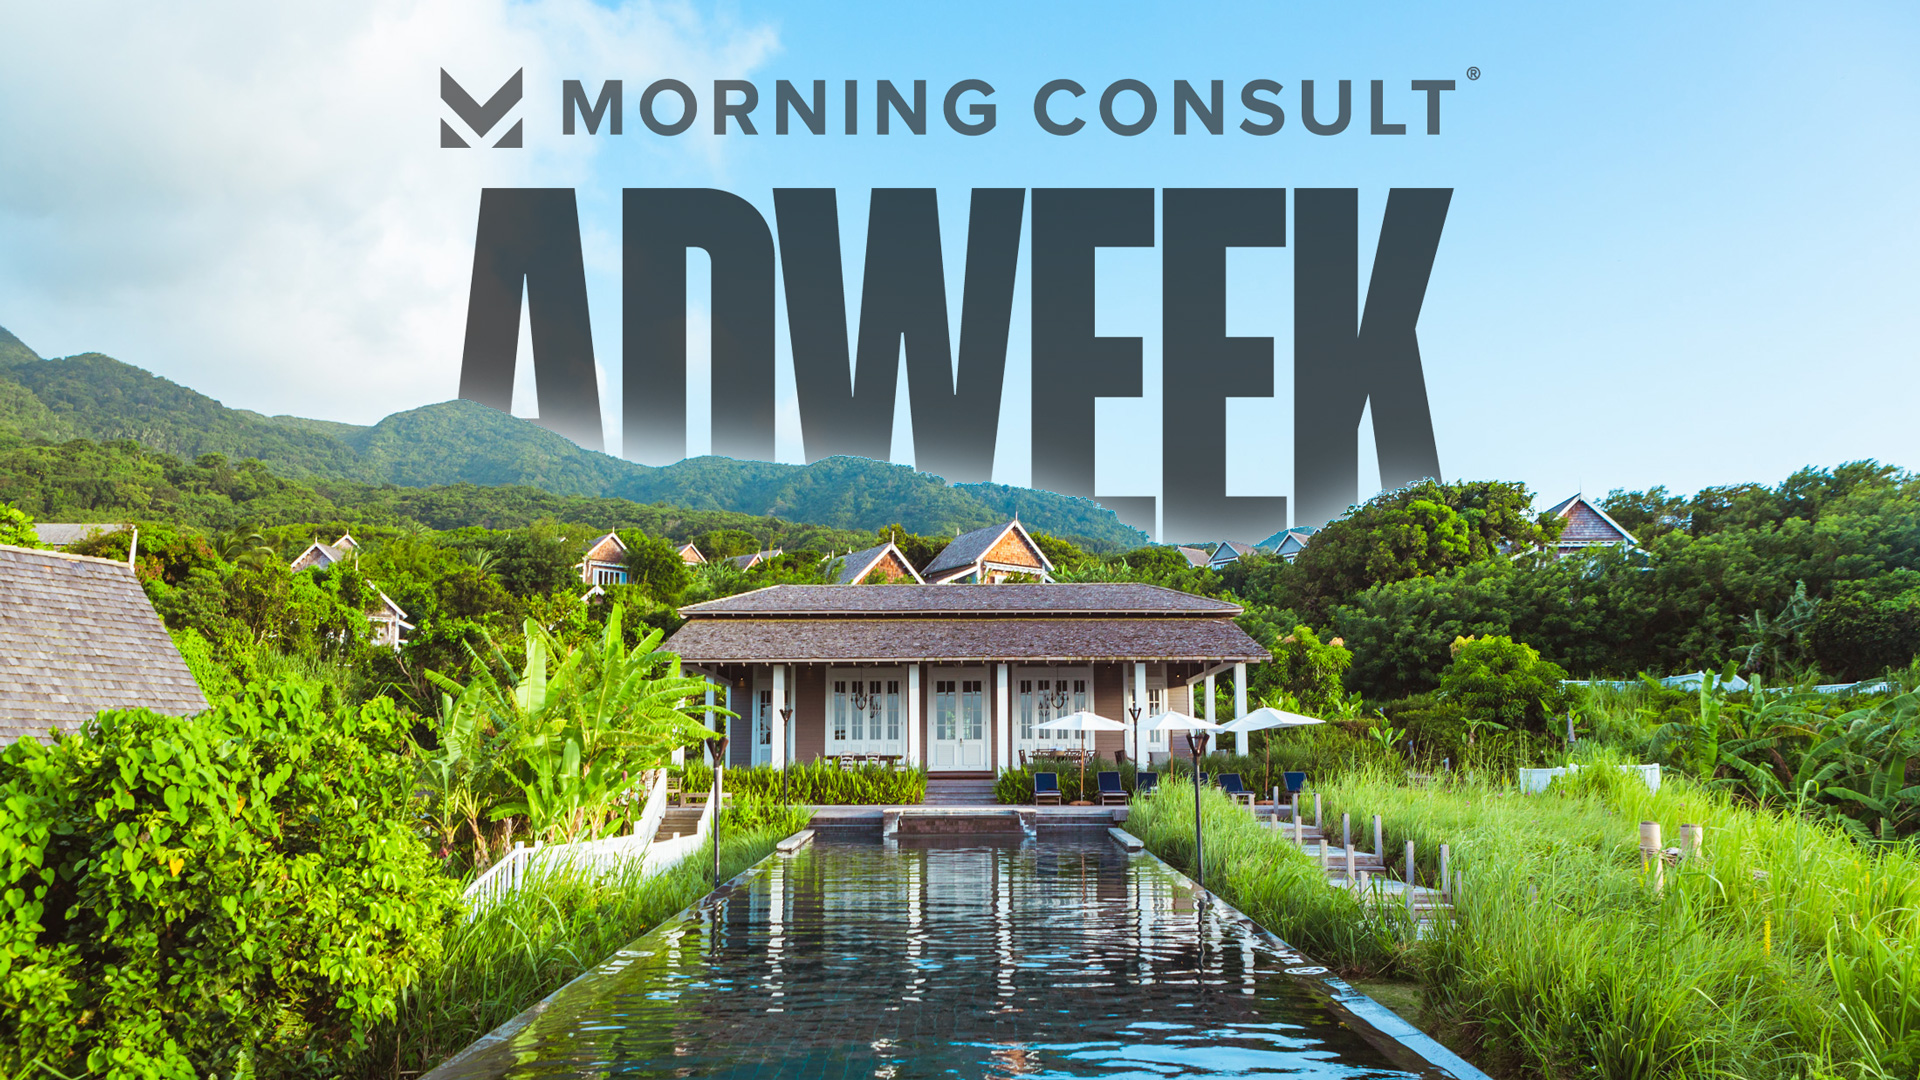 The Morning Consult and Adweek logos behind a garden, pool and home